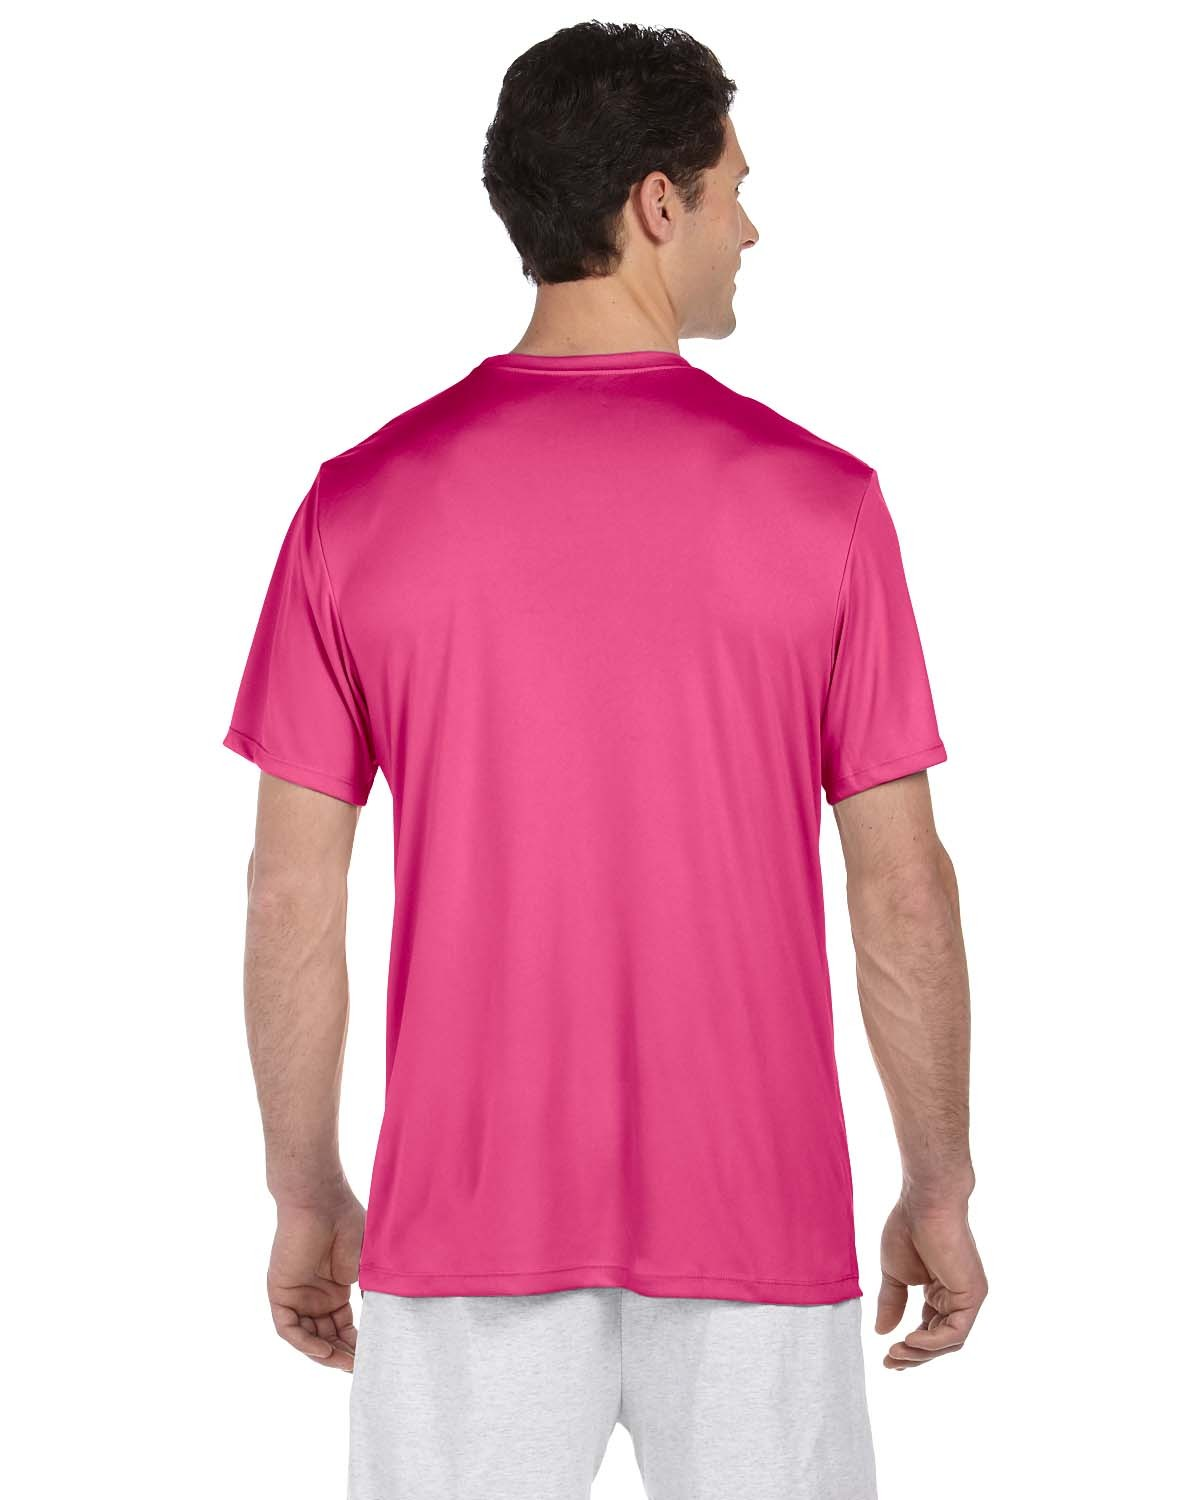 4820 Hanes WOW PINK